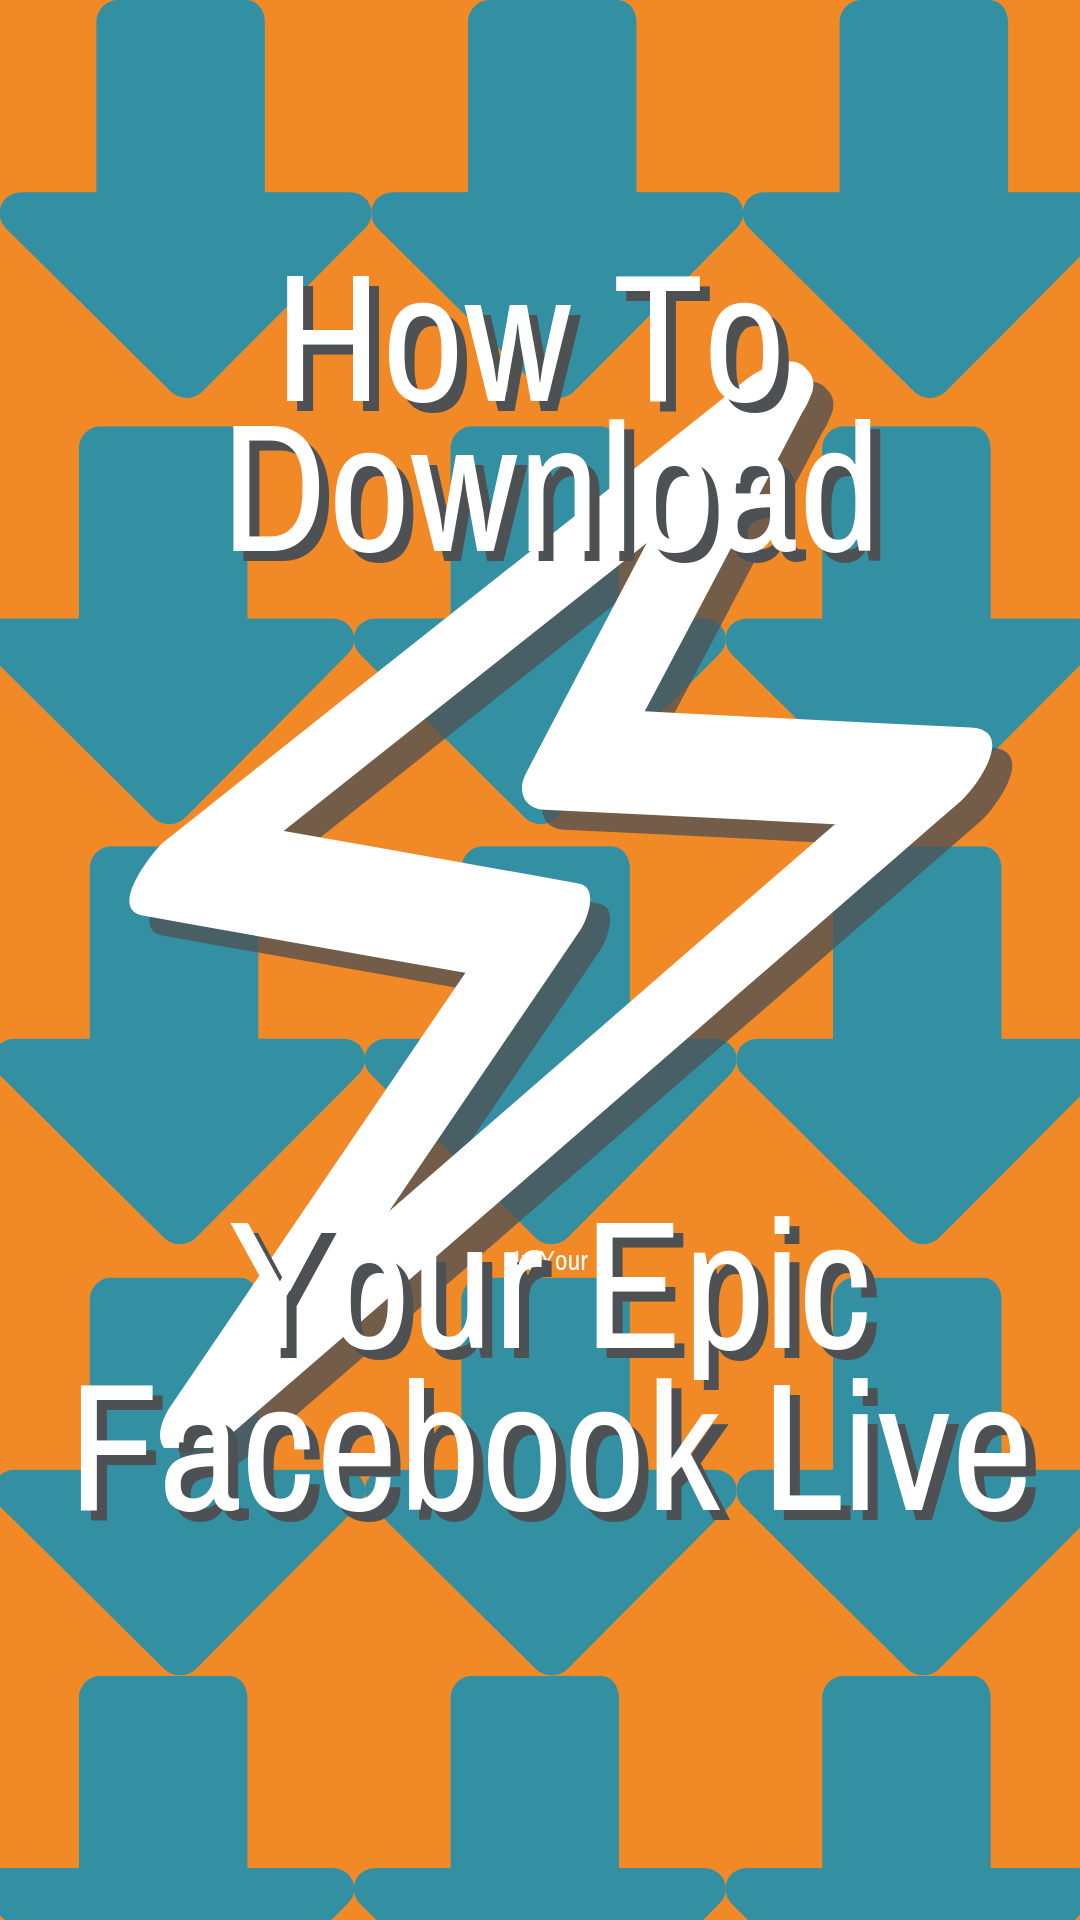 How To Download Your Facebook Live And Make Content Babies Facebook Video Marketing Facebook Live Facebook Marketing